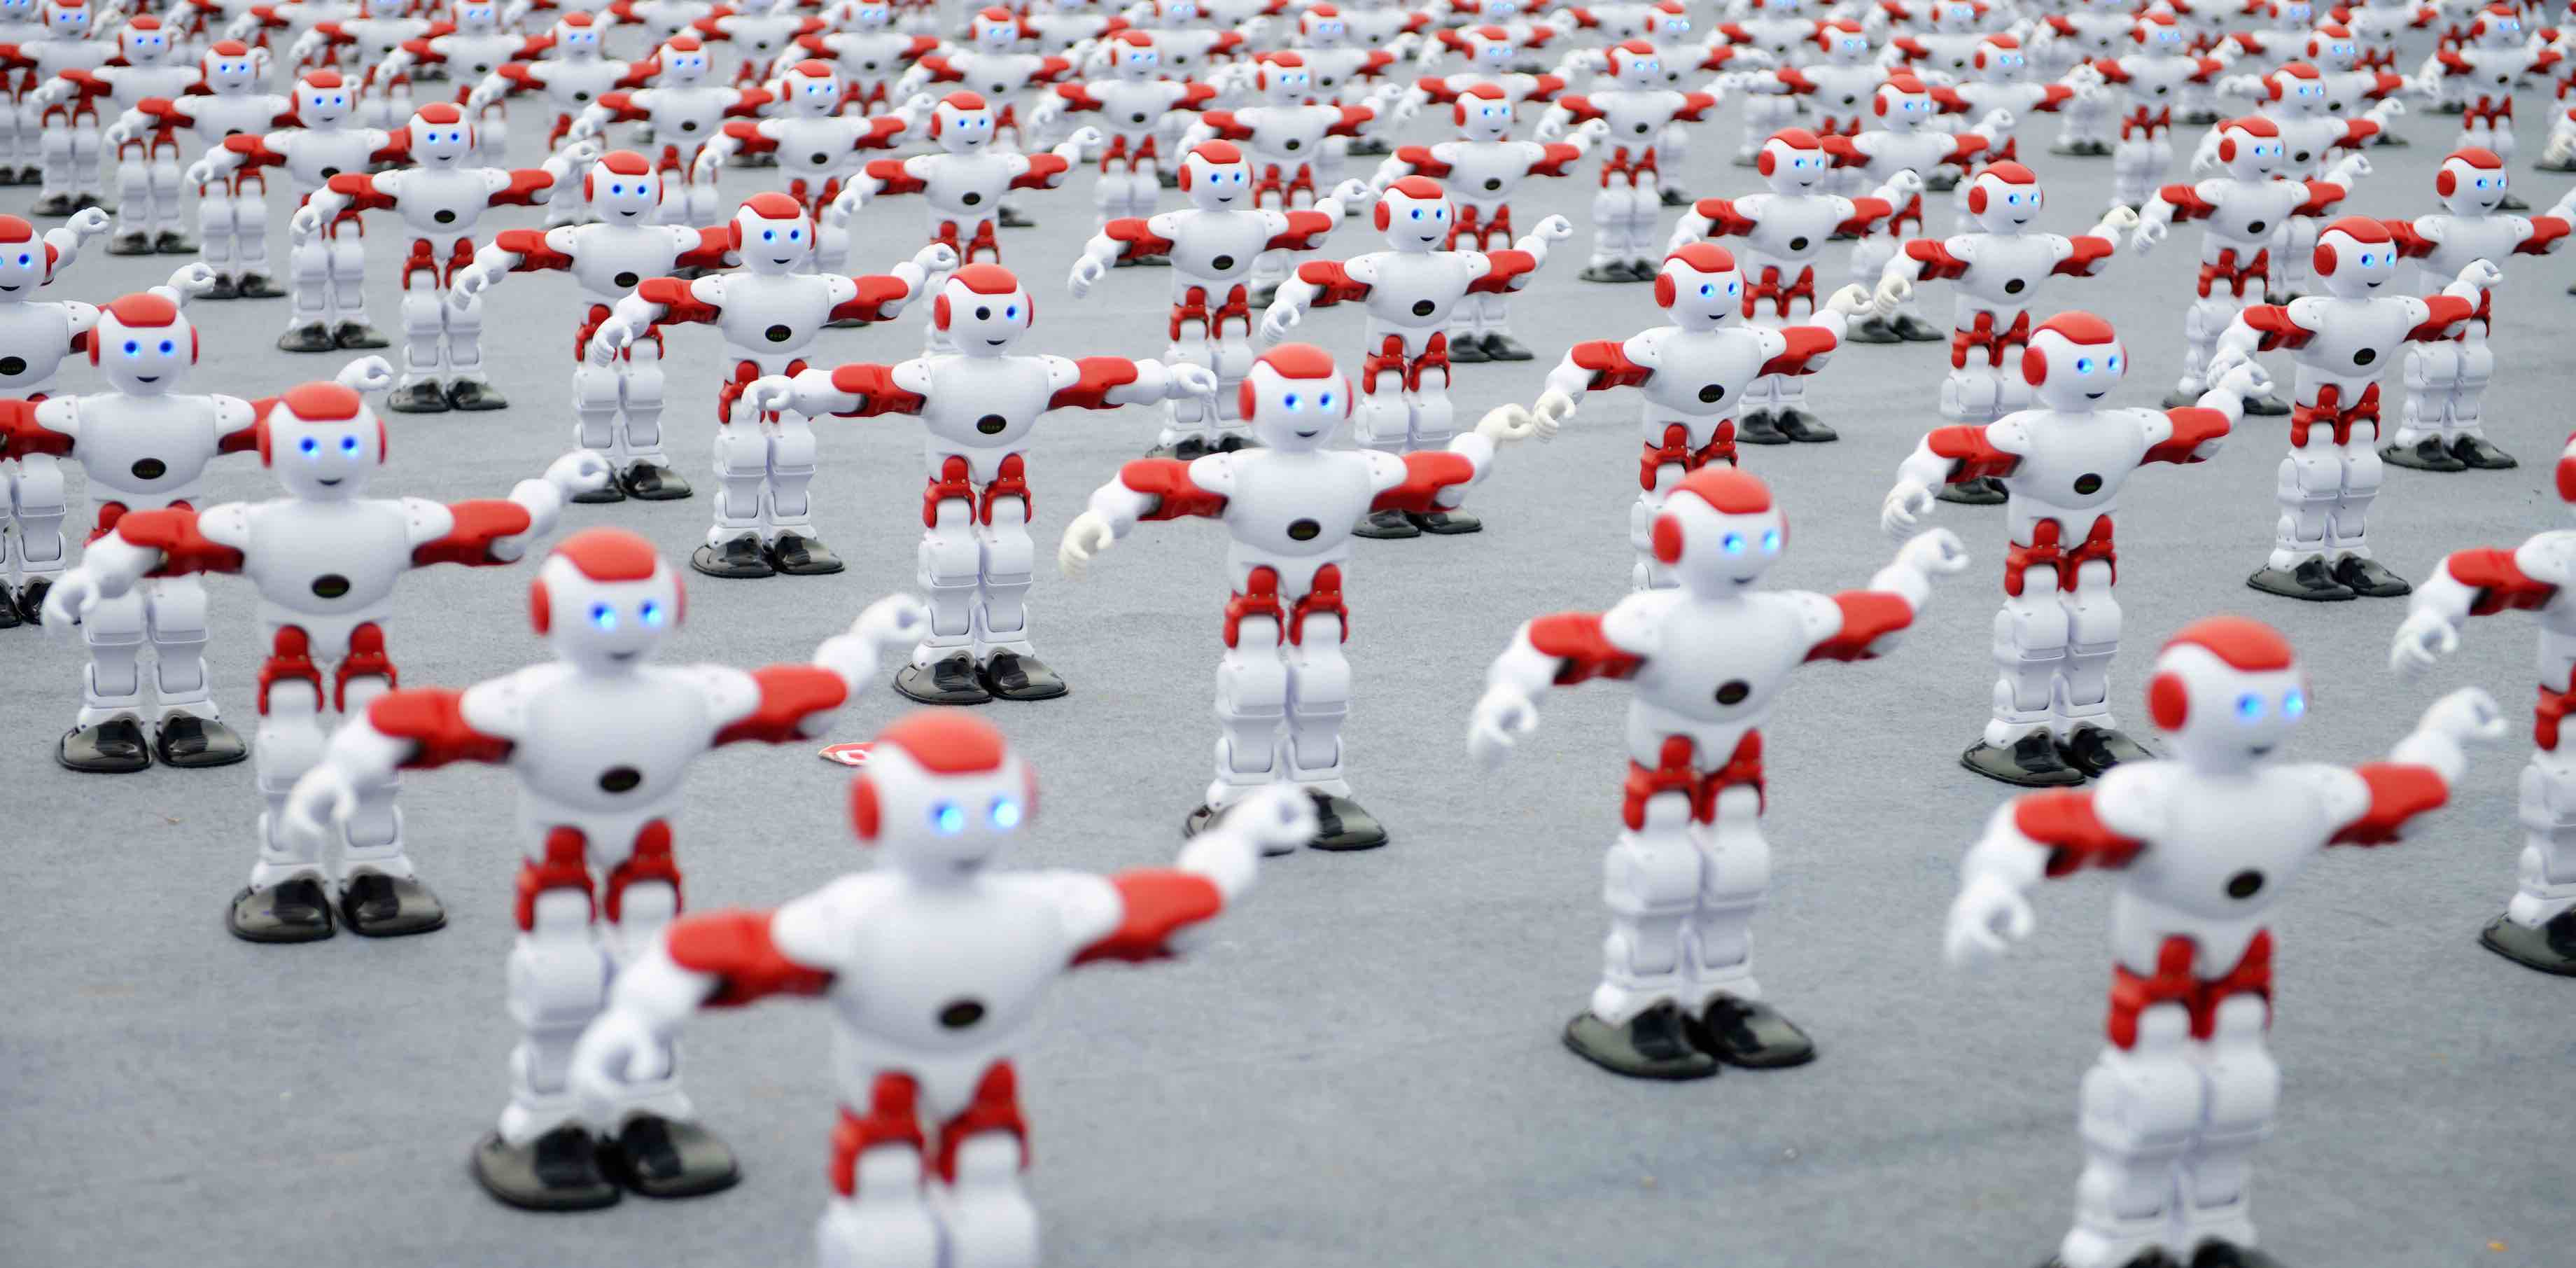 1050 dancing robots at the Qingdao International Beer Festival 2016 (Photo: VCG via Getty)